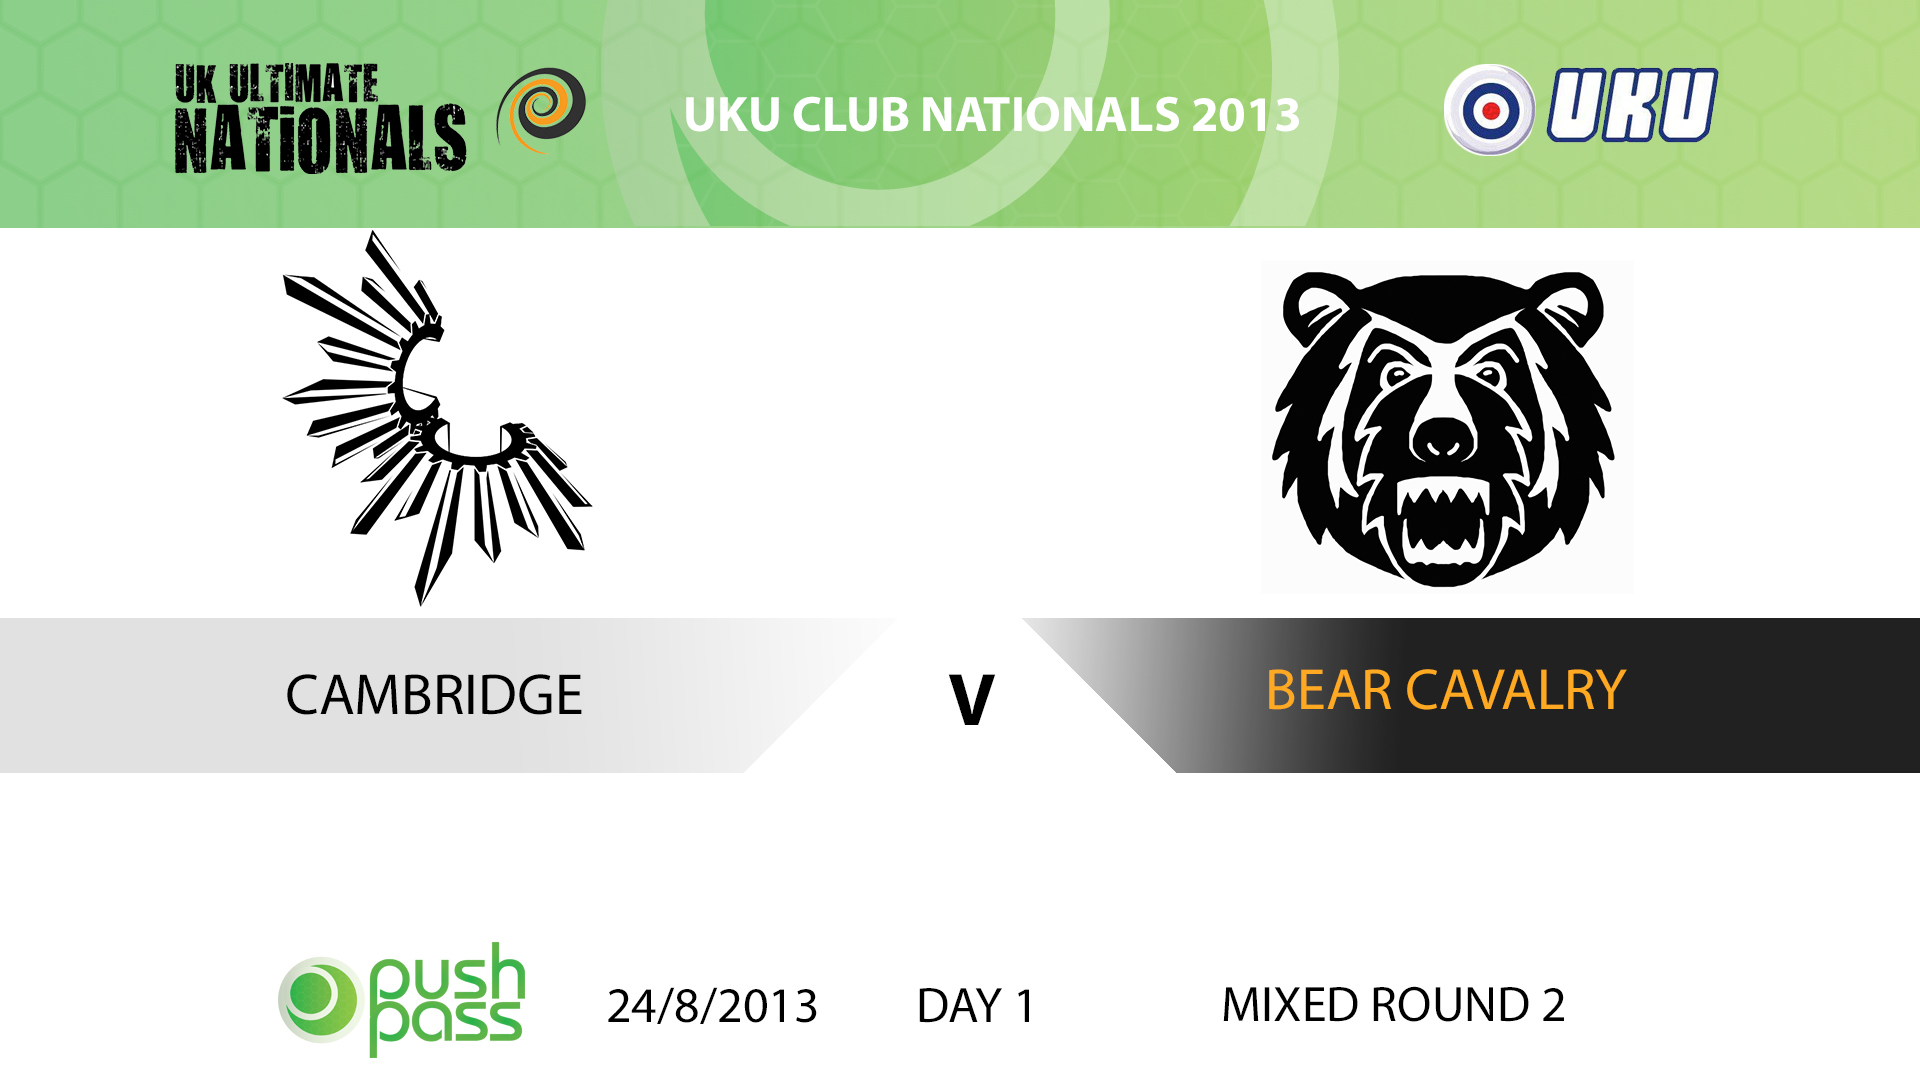 UKU Club Nationals 2013: Cambridge v Bear Cavalry (round 2)